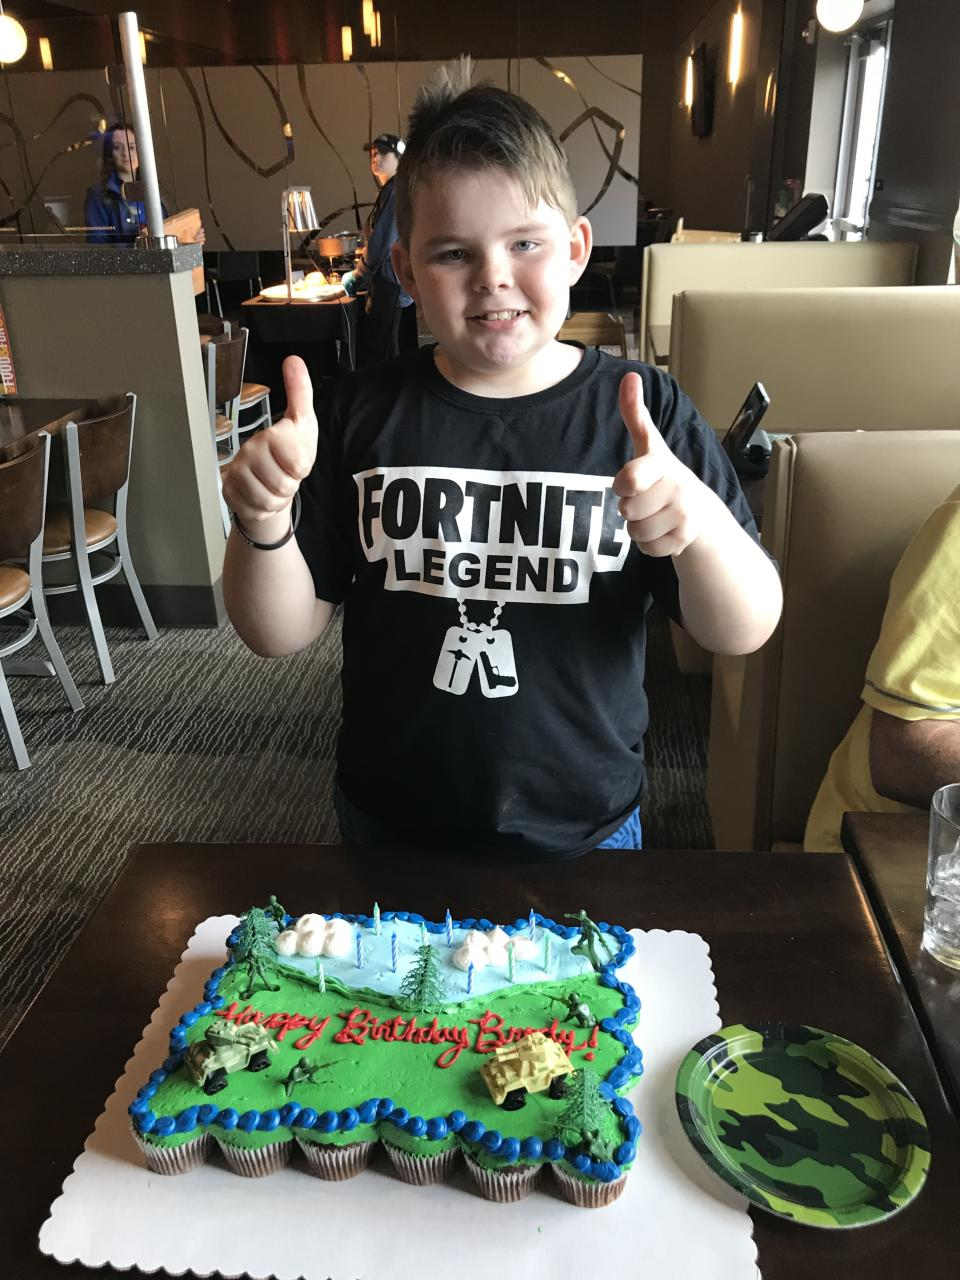 When none of Brody Barron's friends showed up for his 10th birthday party, a group of strangers threw him a celebration. (Photo: Courtesy of Susan Barron)